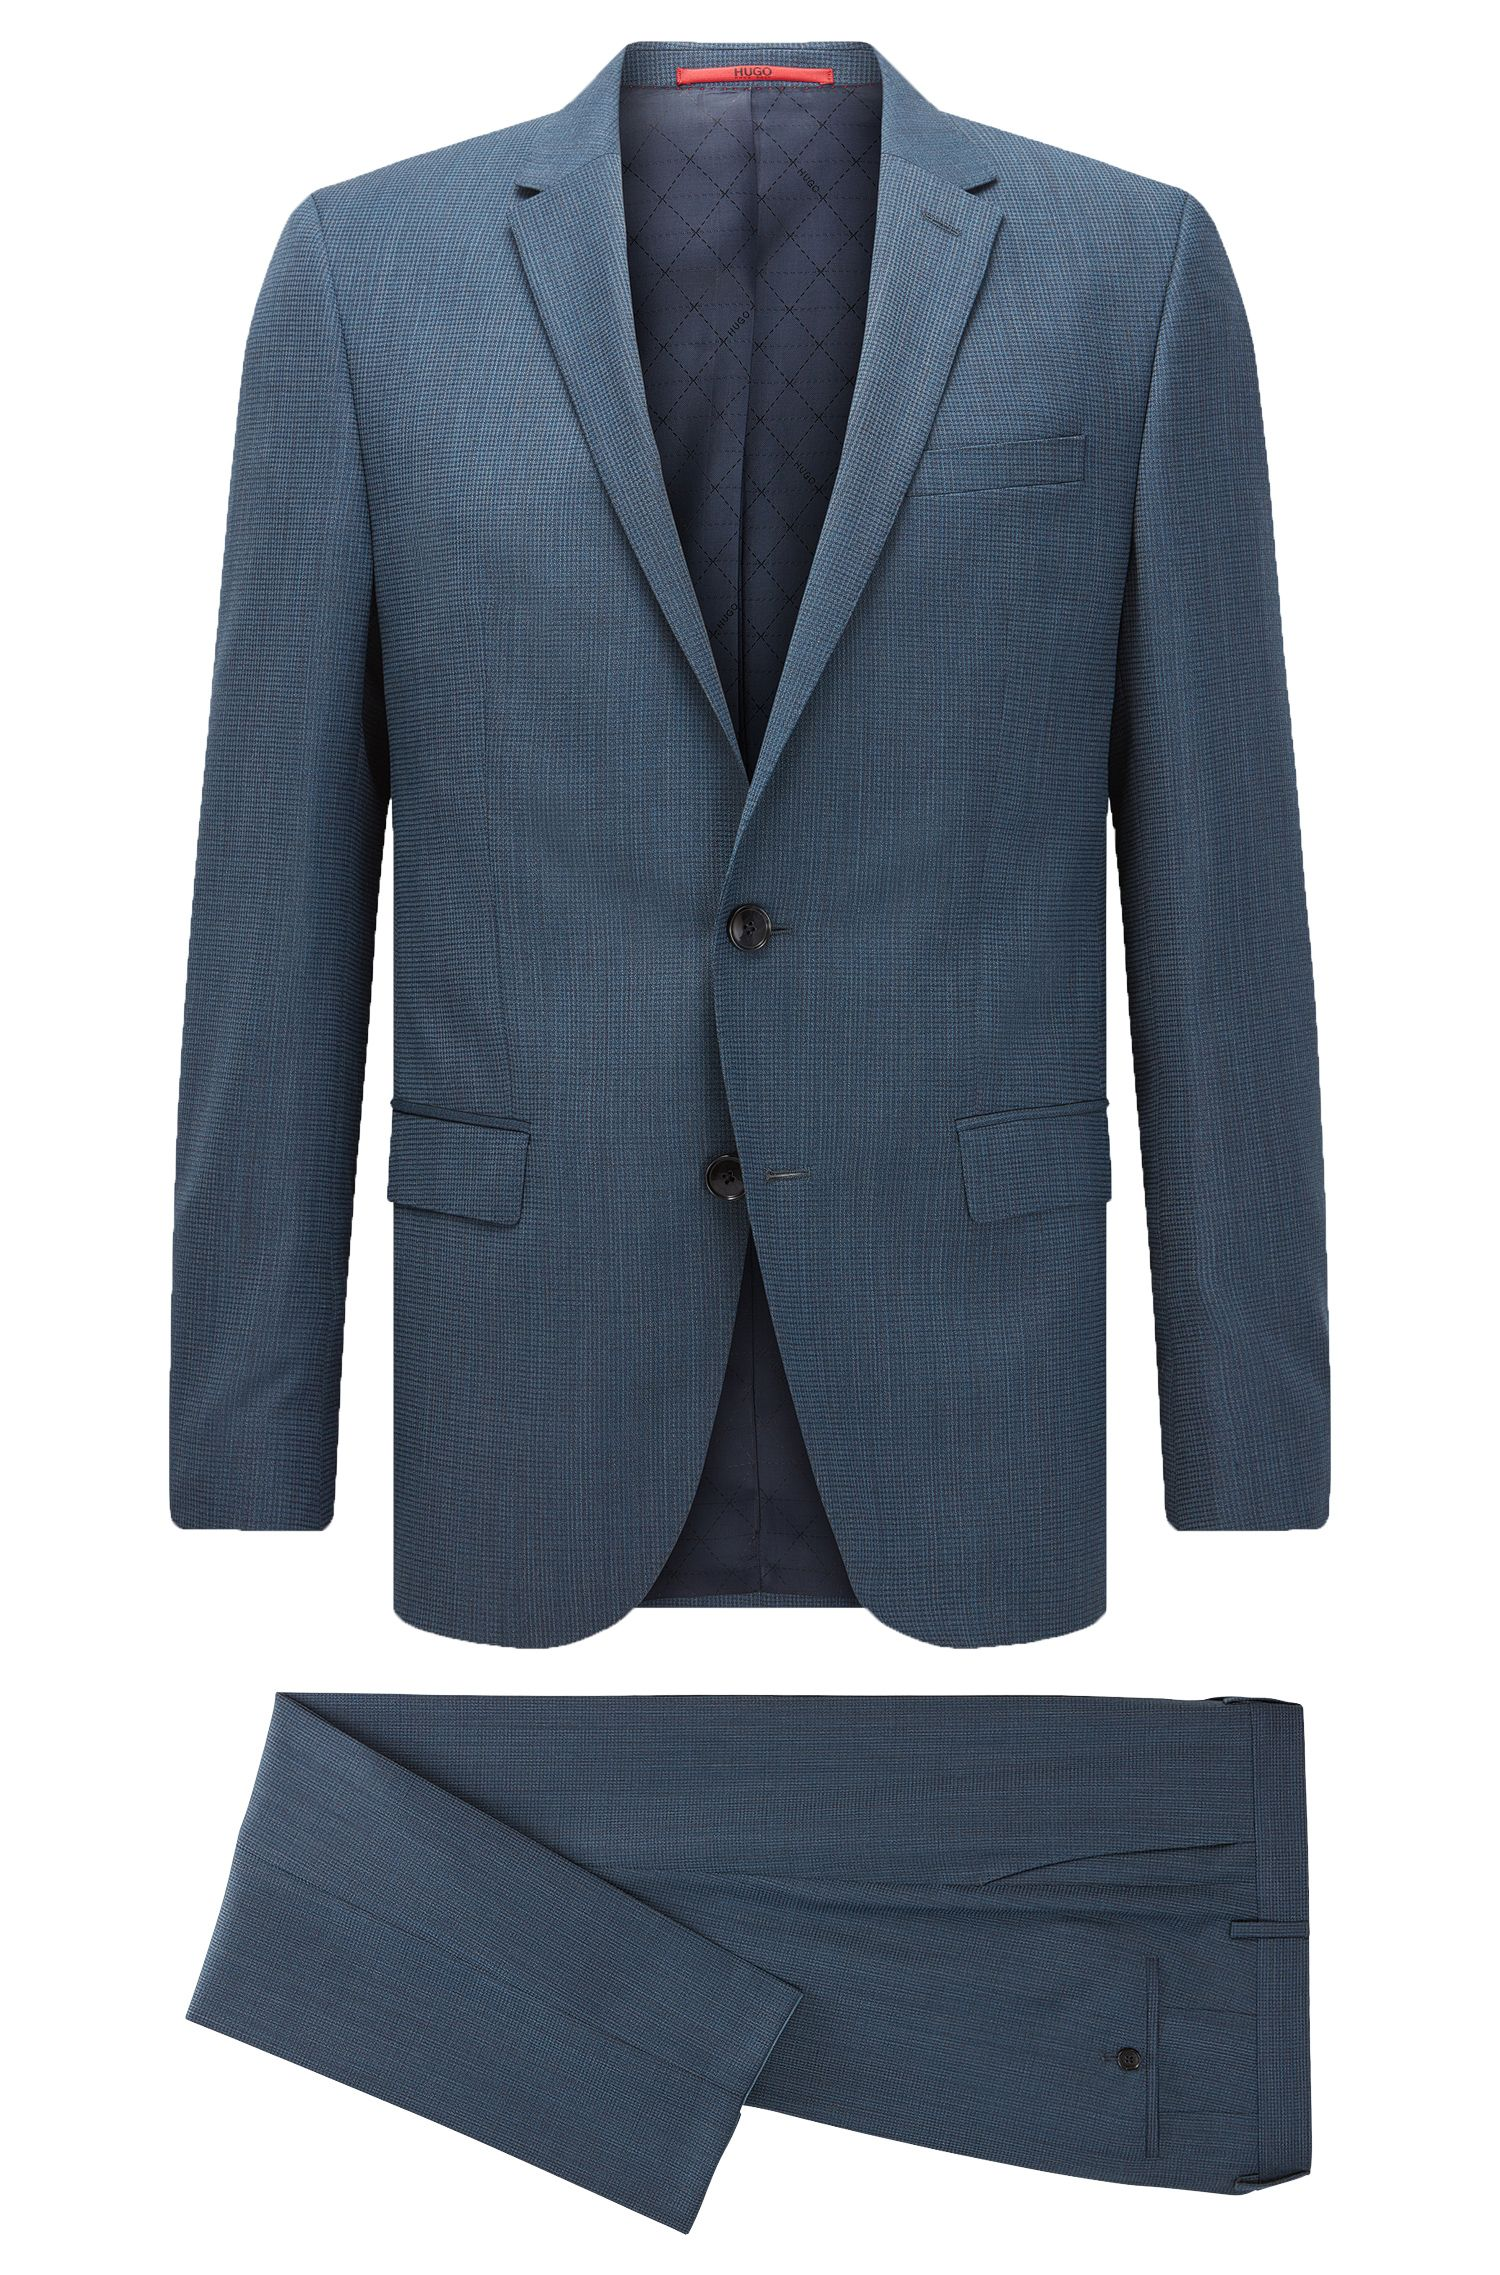 Stretch Virgin Wool Blend Suit, Slim Fit | C-Harvey/C-Getlin